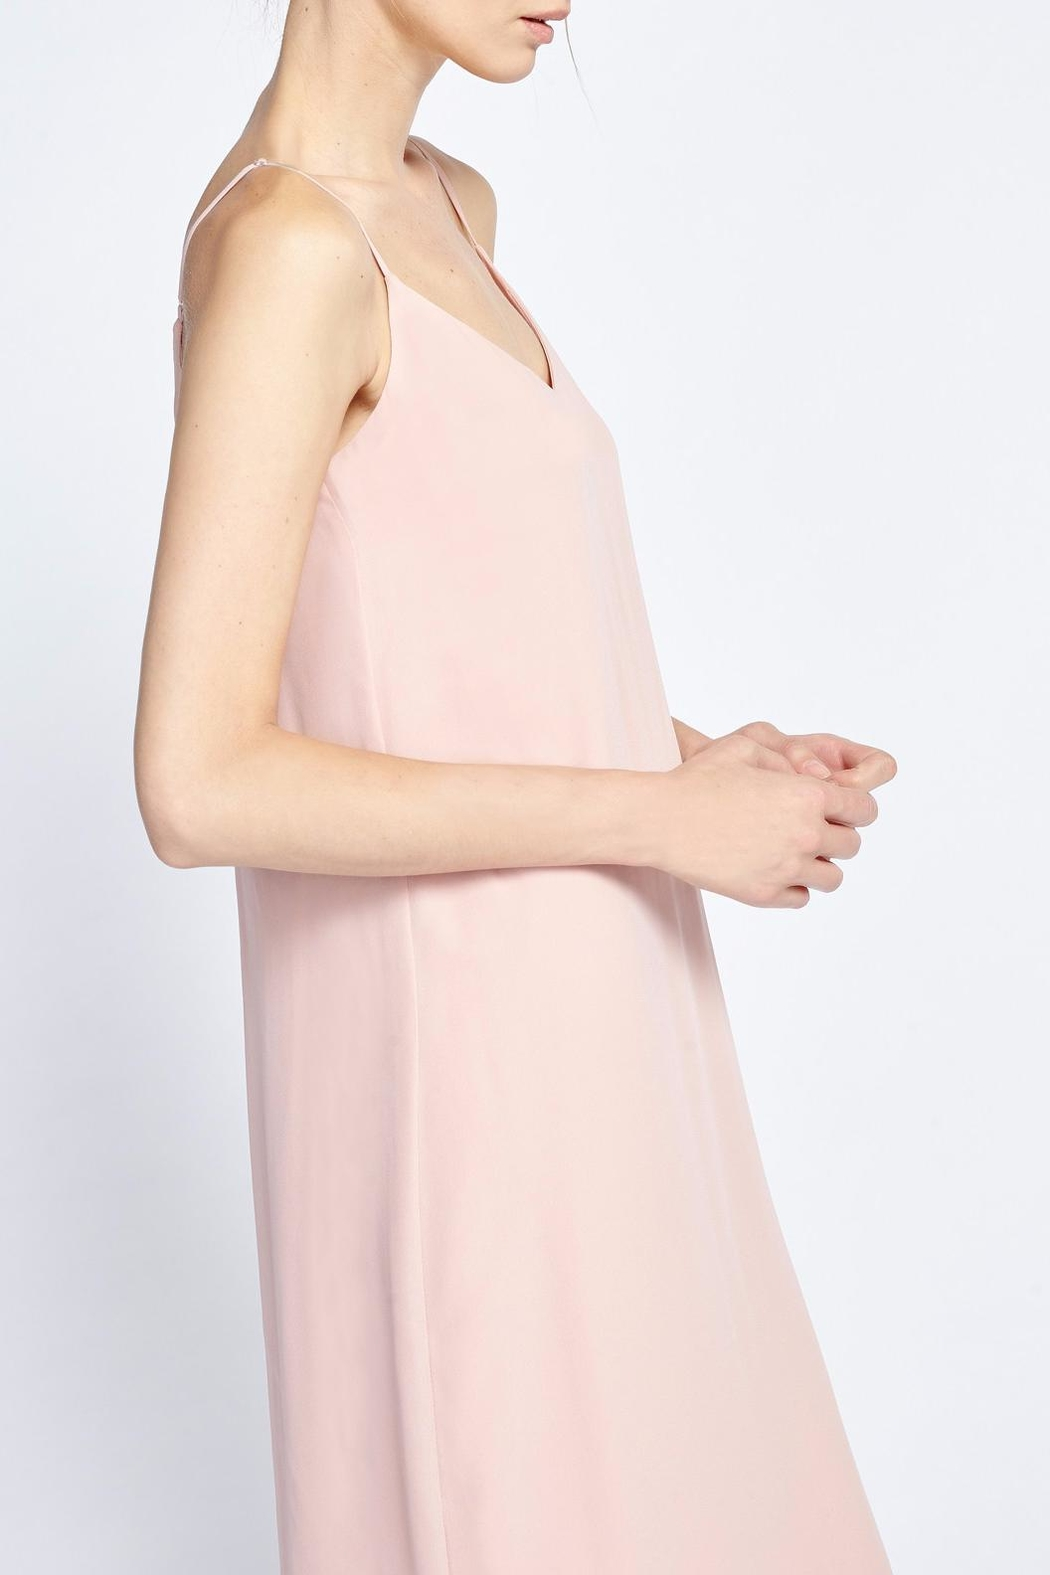 NOEL ASMAR COLLECTIONS Piper Slip Dress - Side Cropped Image